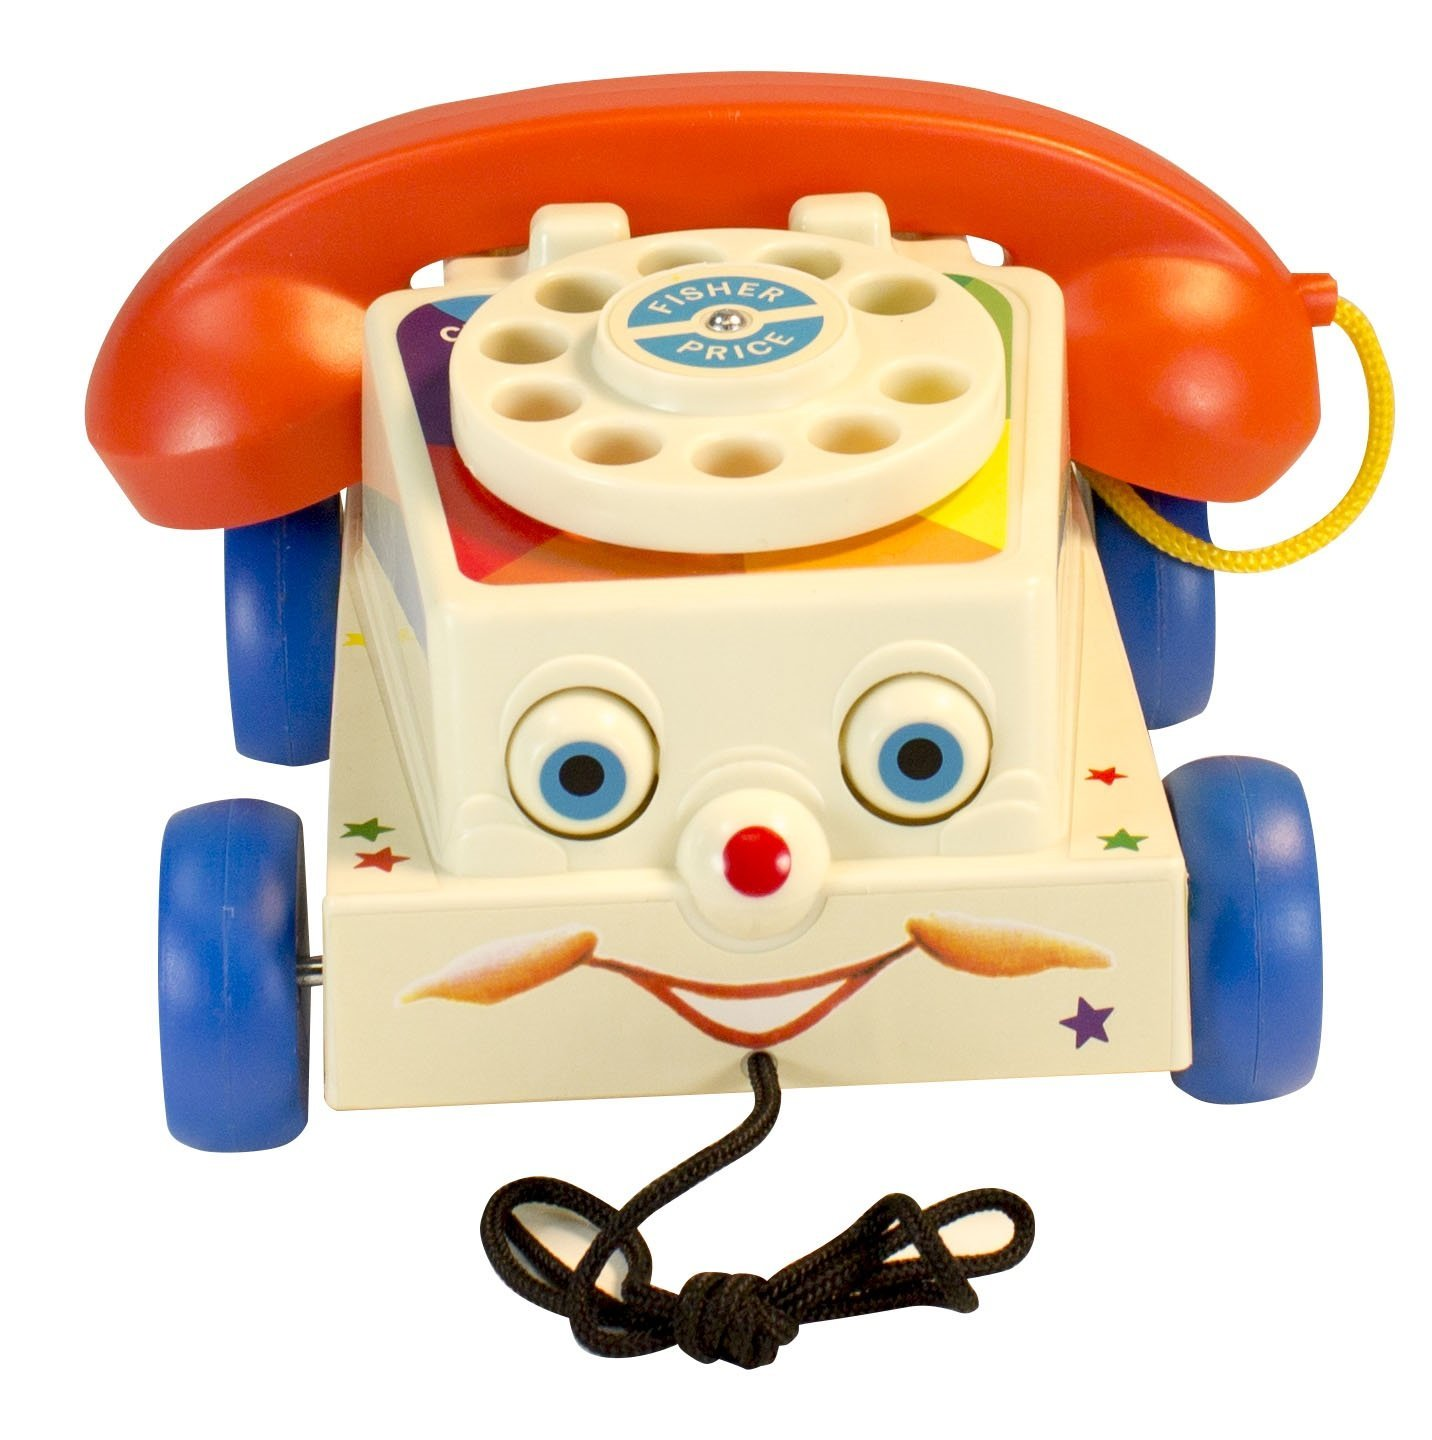 Amazon Fisher Price Classics Retro Chatter Phone Toys & Games